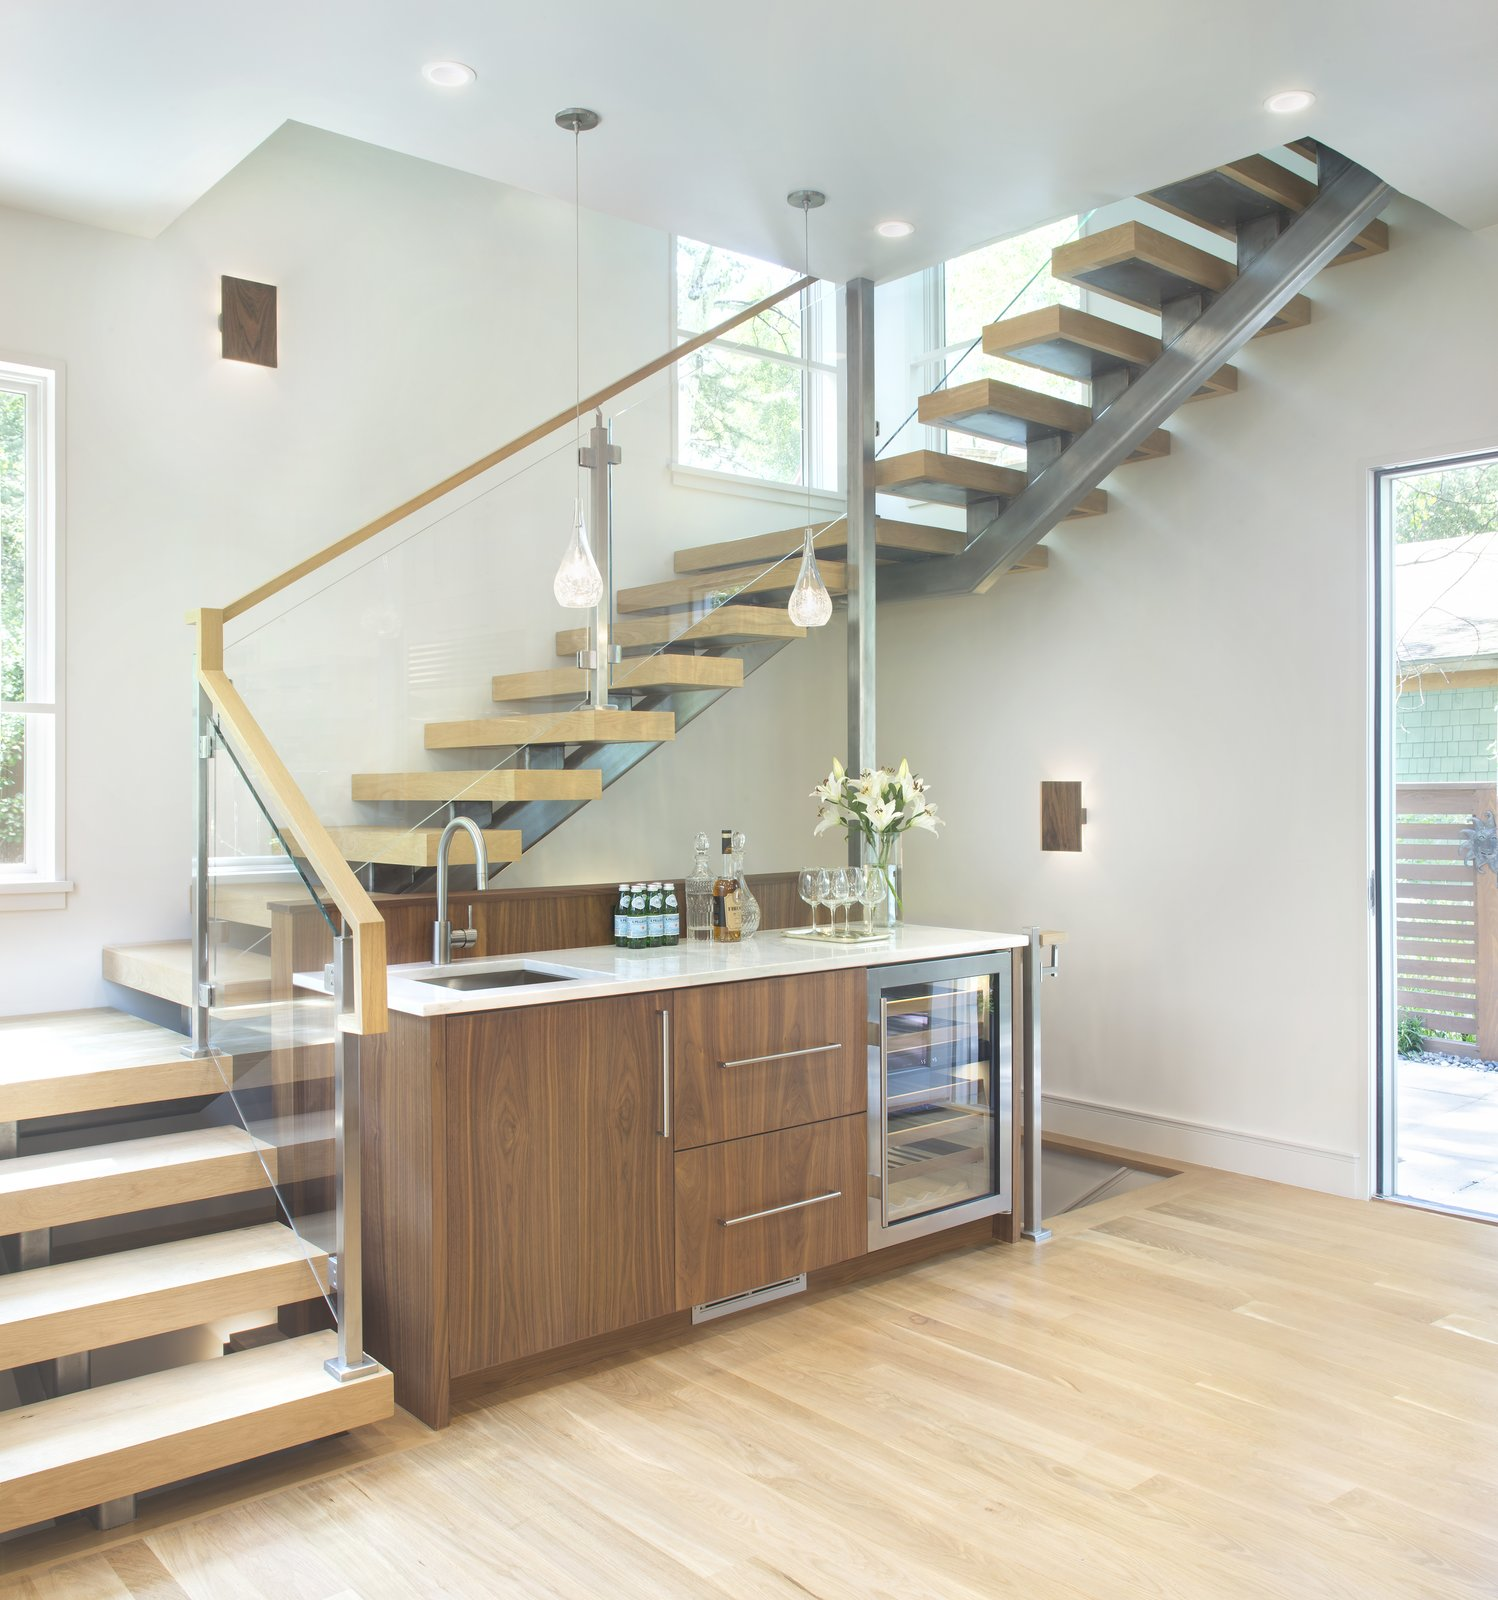 Staircase Stair and wet bar   Smuggler Grove by Forum Phi Architecture | Interiors | Planning